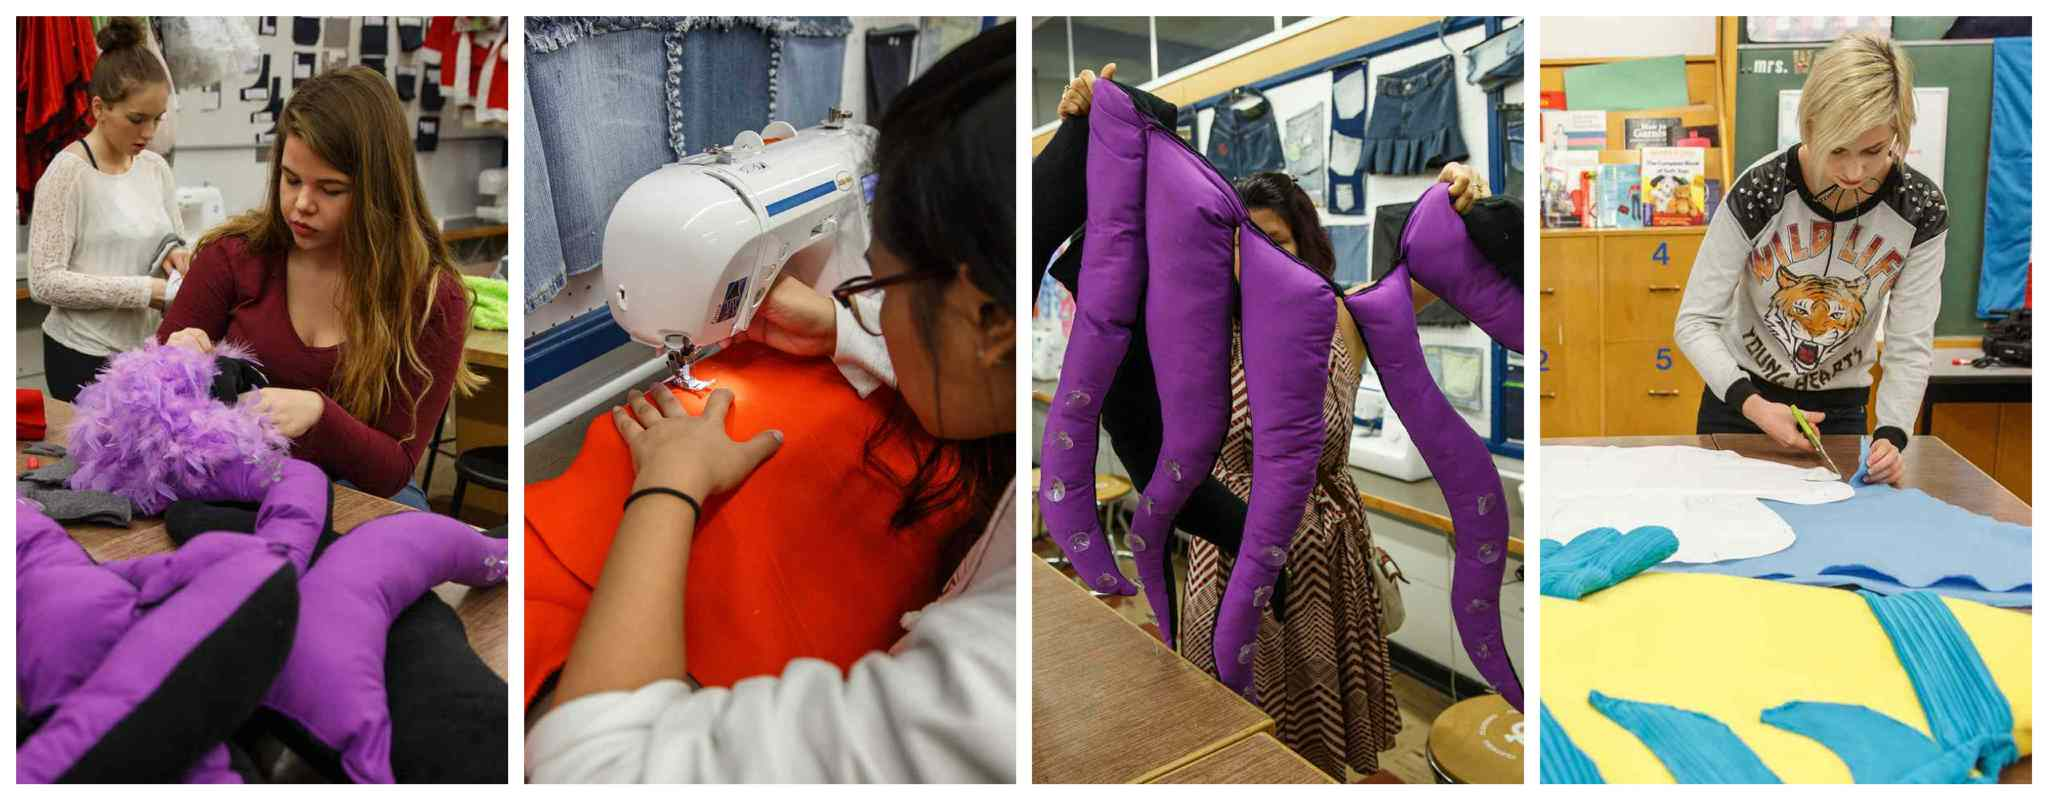 Sewing students work on The Little Mermaid costumes.  (Mike Deal / Winnipeg Free Press)